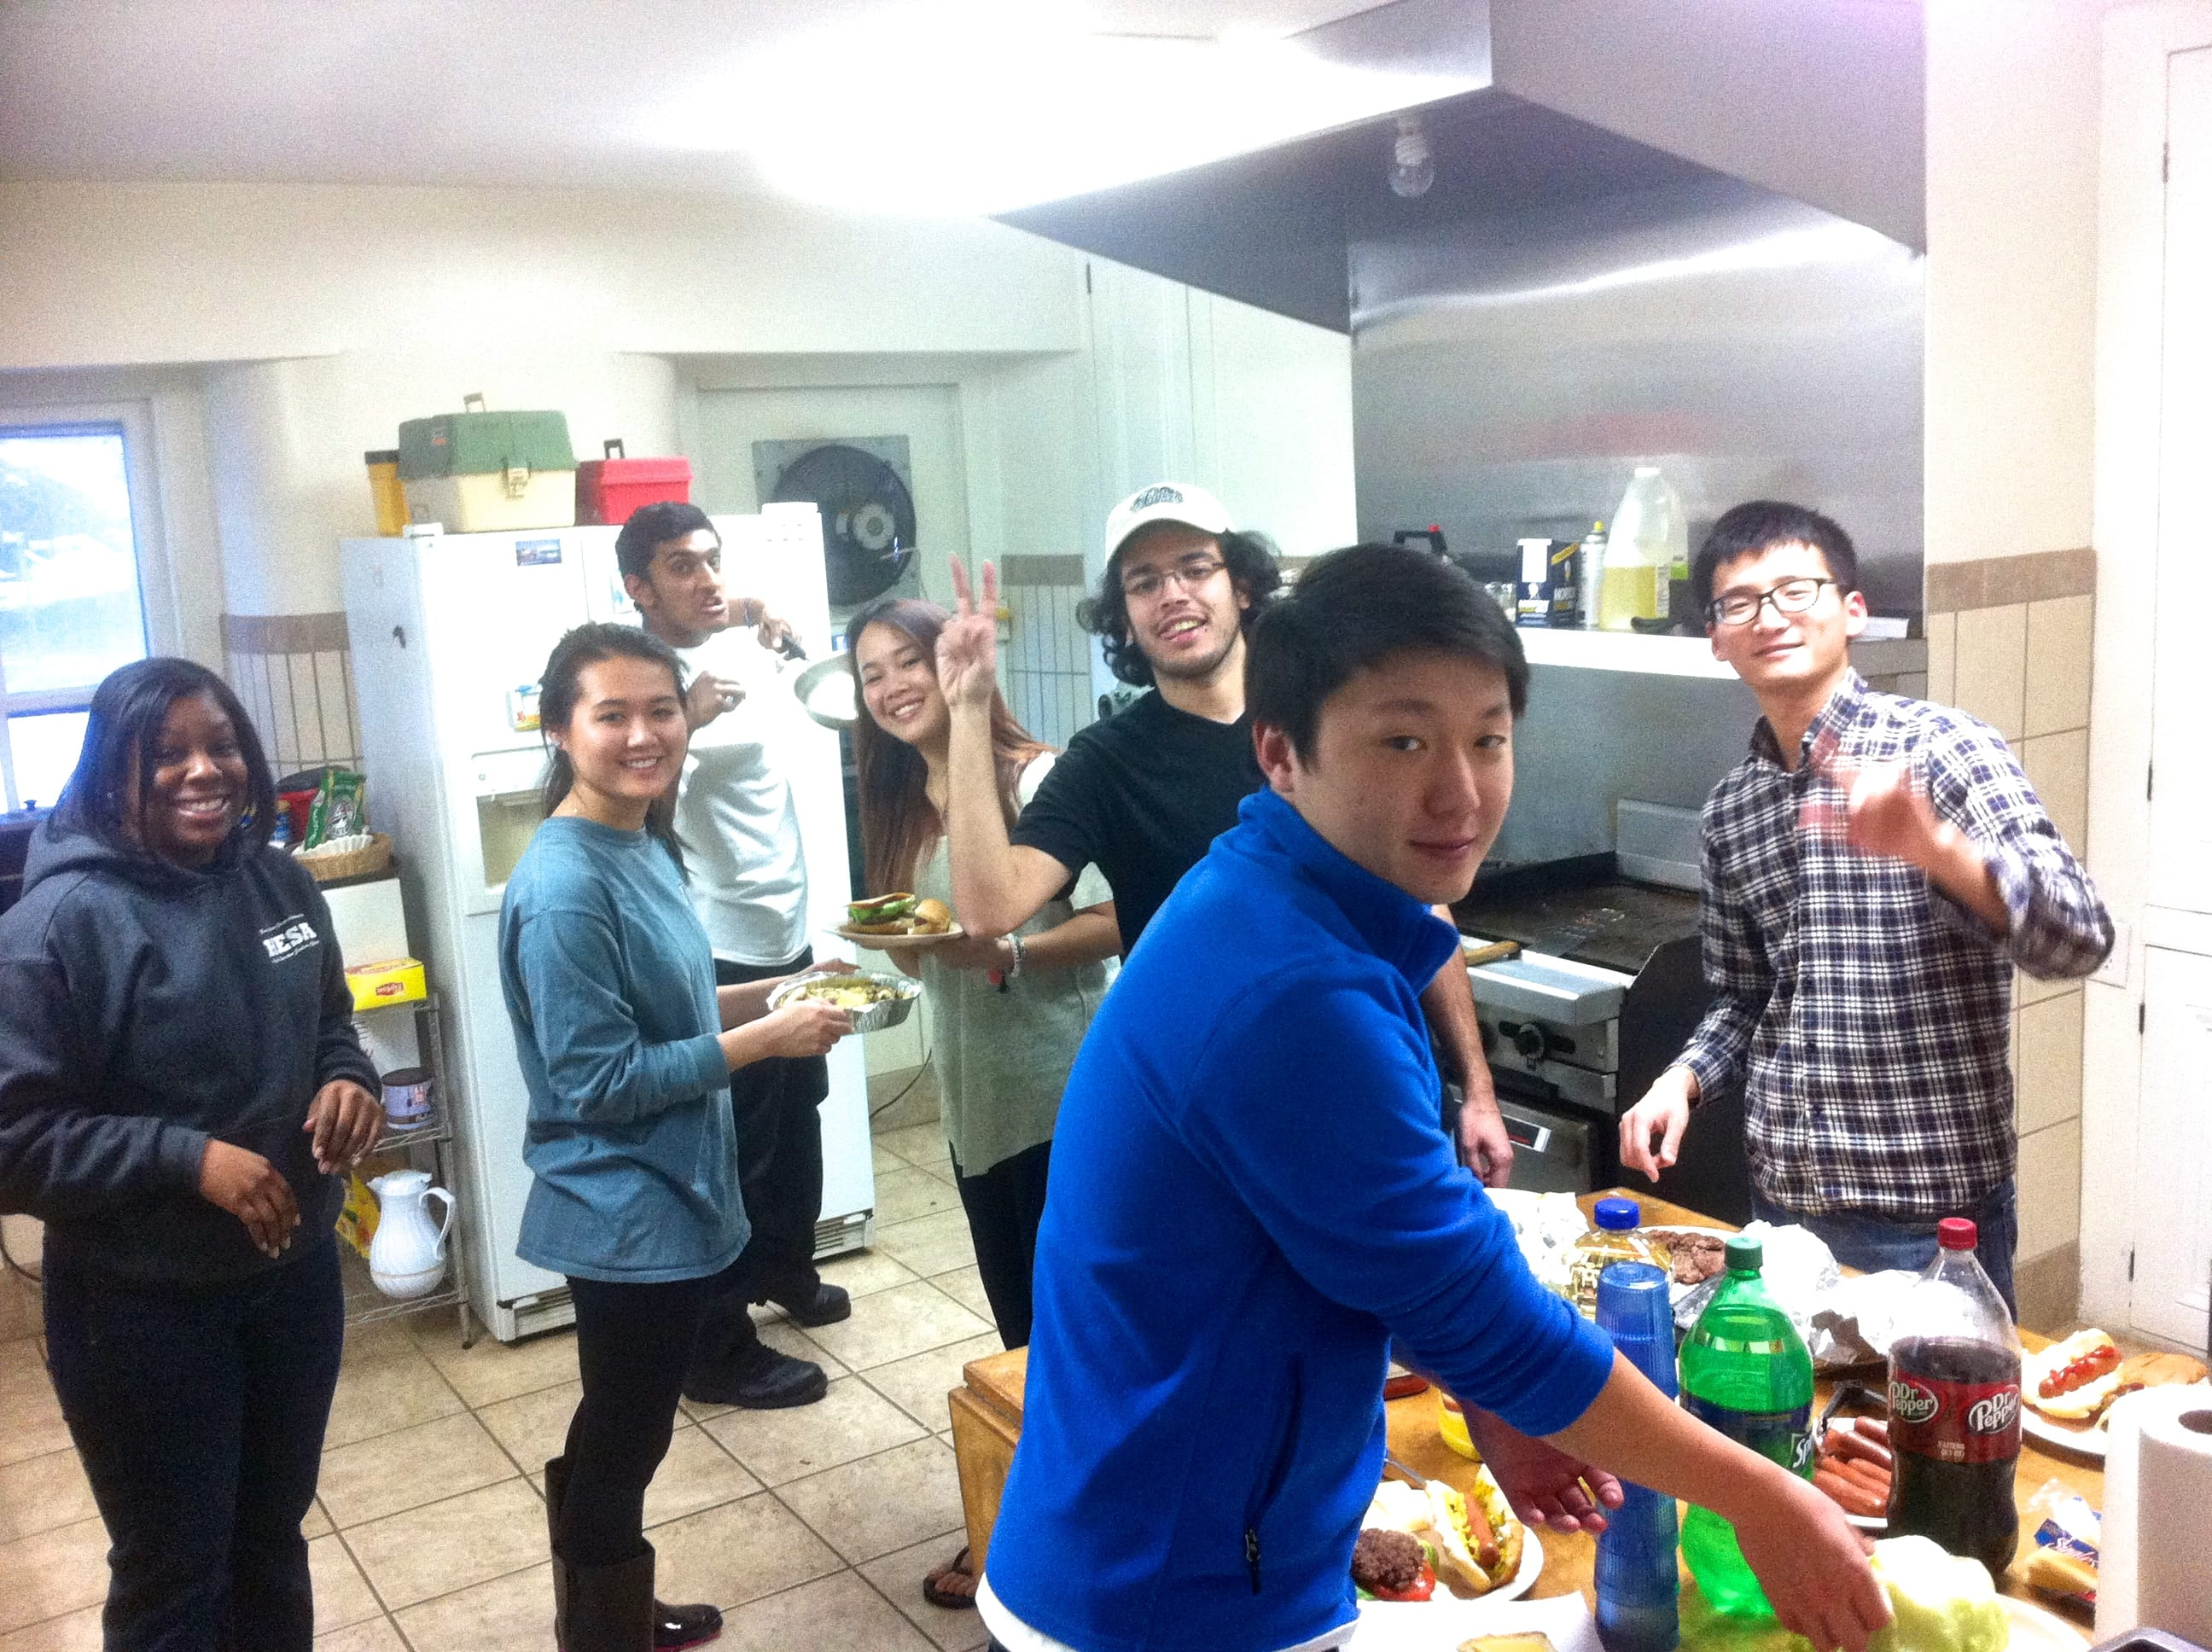 Best team ever - everyone giving a helping hand to make breakfast and dinner. best team ever.